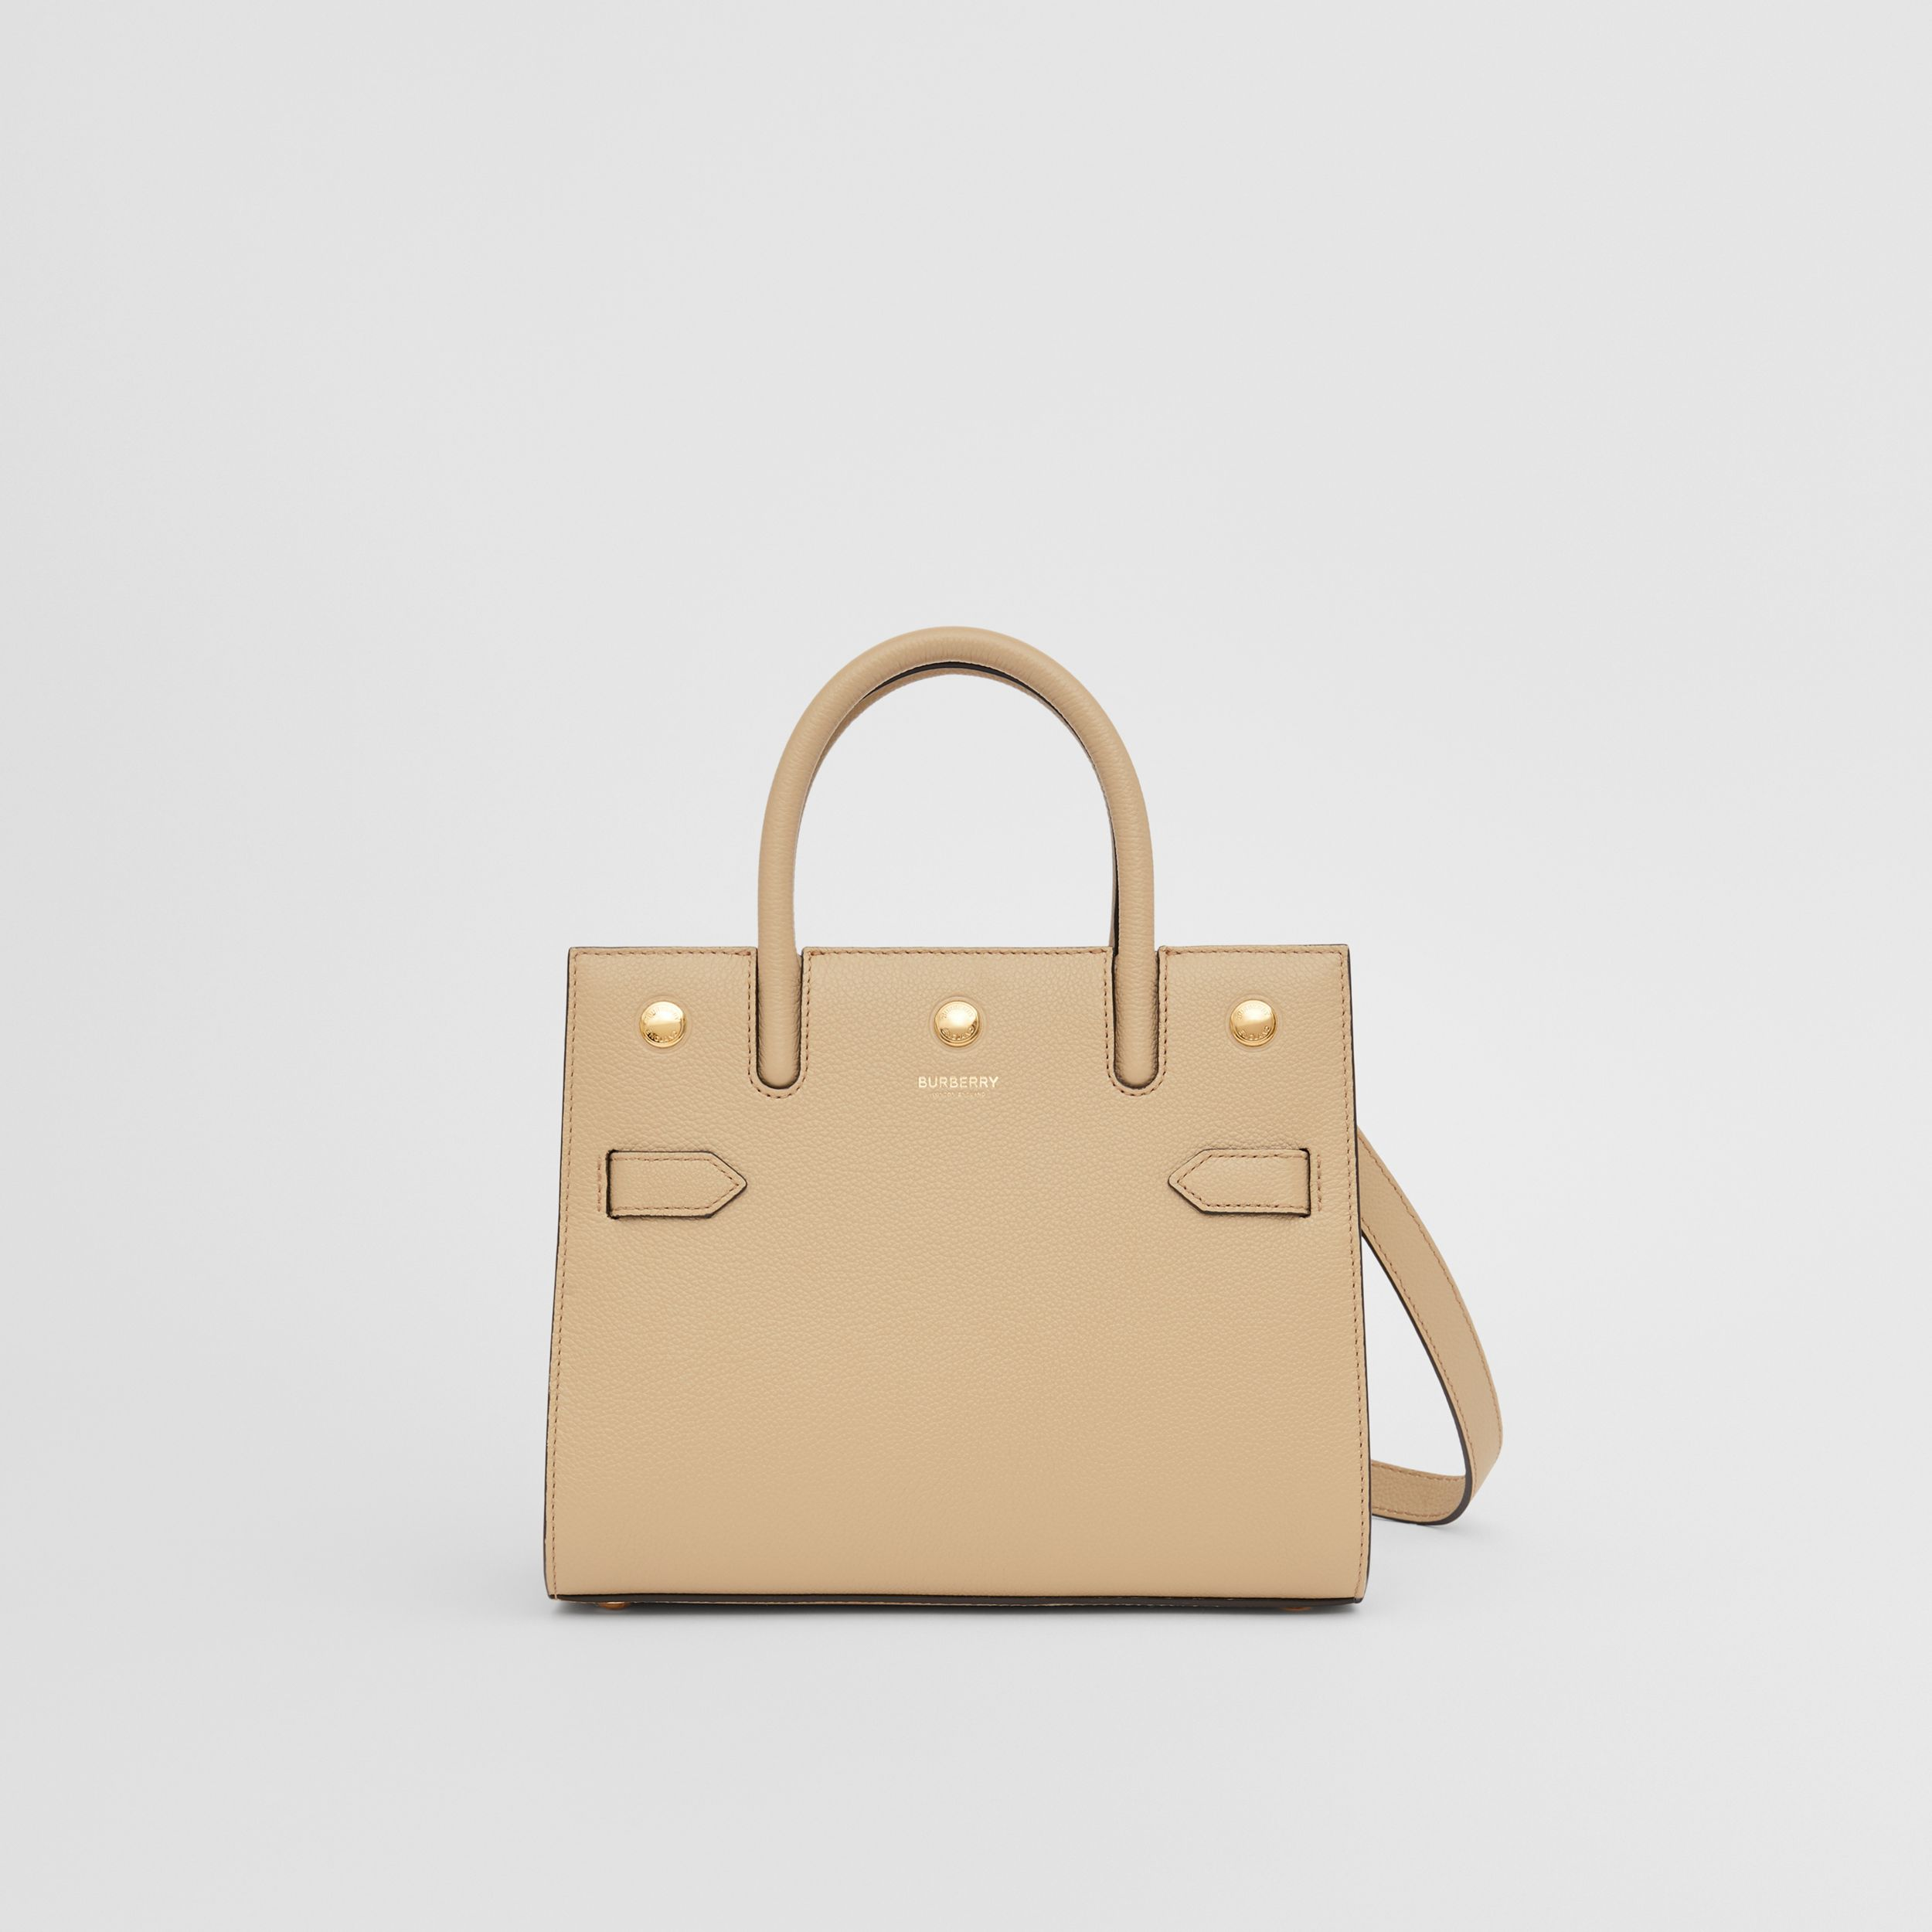 Mini Leather Two-handle Title Bag in Light Beige - Women | Burberry United States - 1